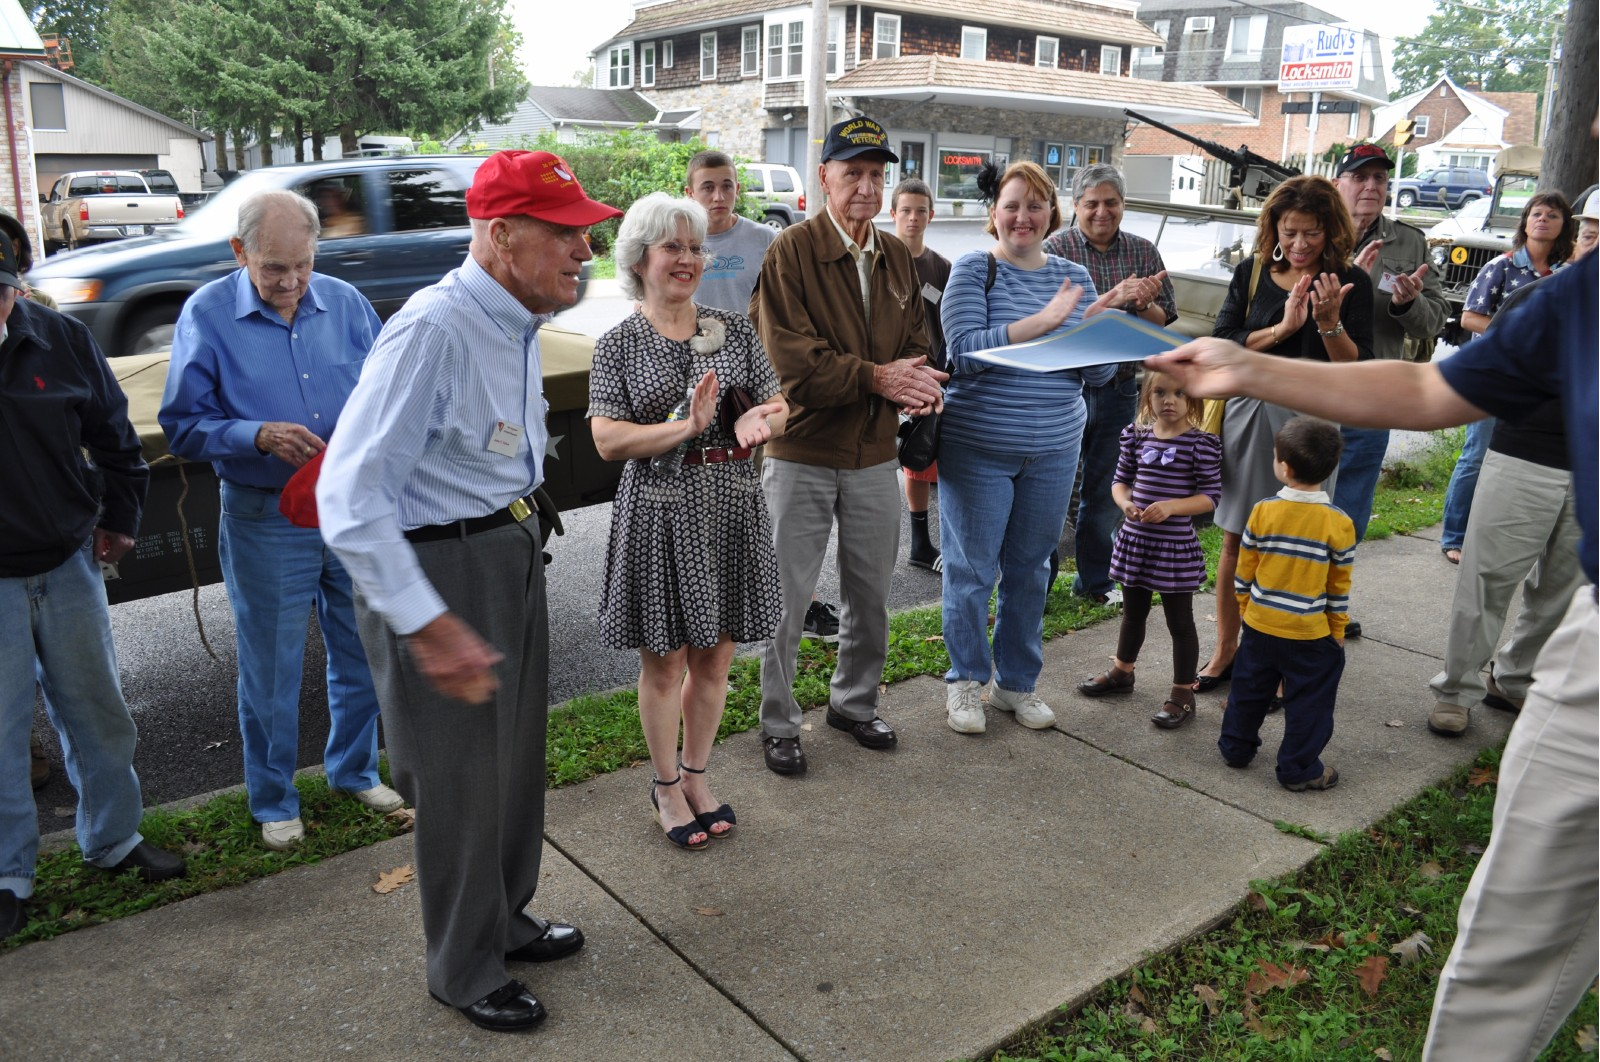 veteran's park applause - John received proclamation